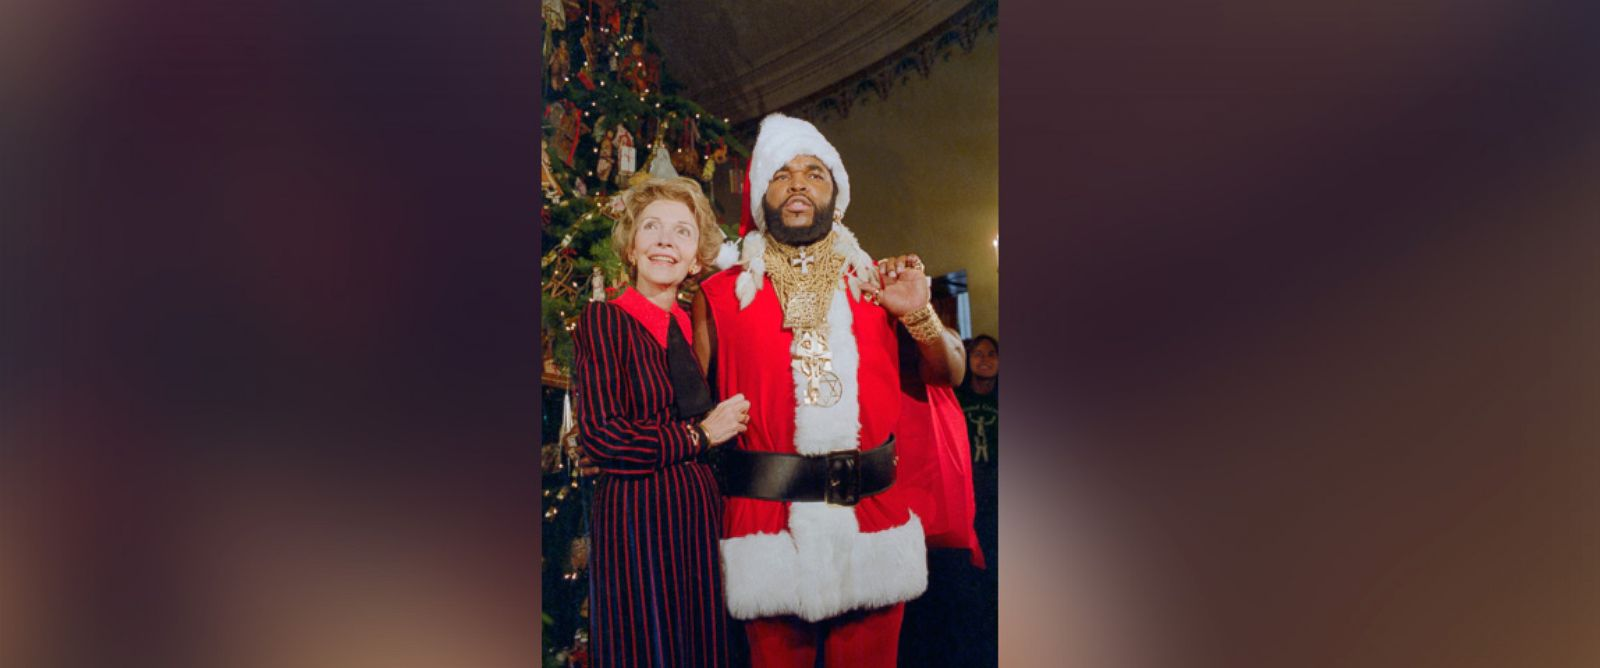 """PHOTO: Mr. T, of the television show the """"A-Team,"""" poses as Santa Claus to help First Lady Nancy Reagan unveil the White House Christmas decorations on Dec. 12, 1983 in Washington."""